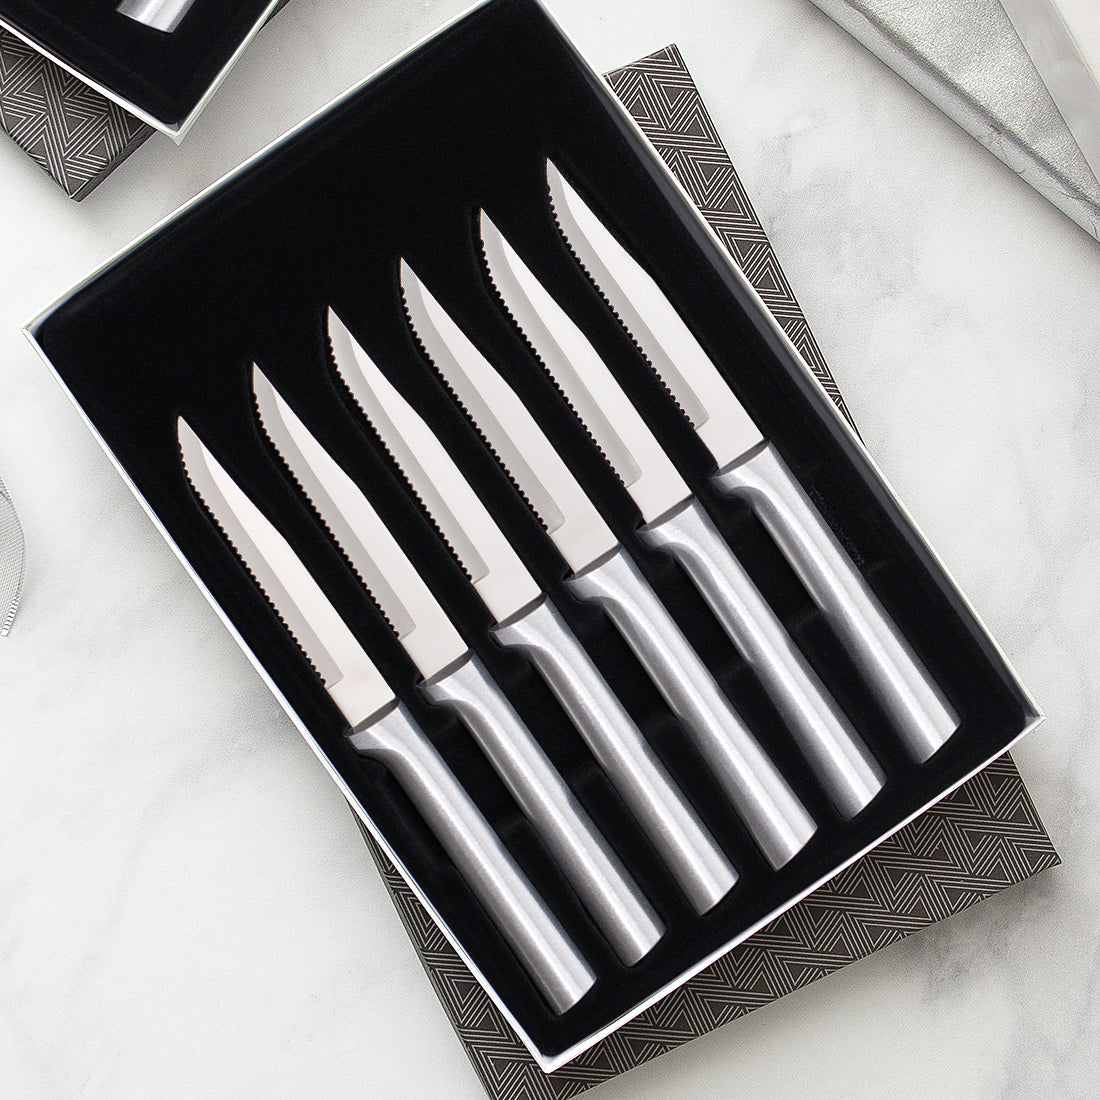 Rada Cutlery Six Serrated Steak knives Gift Set with silver handles.